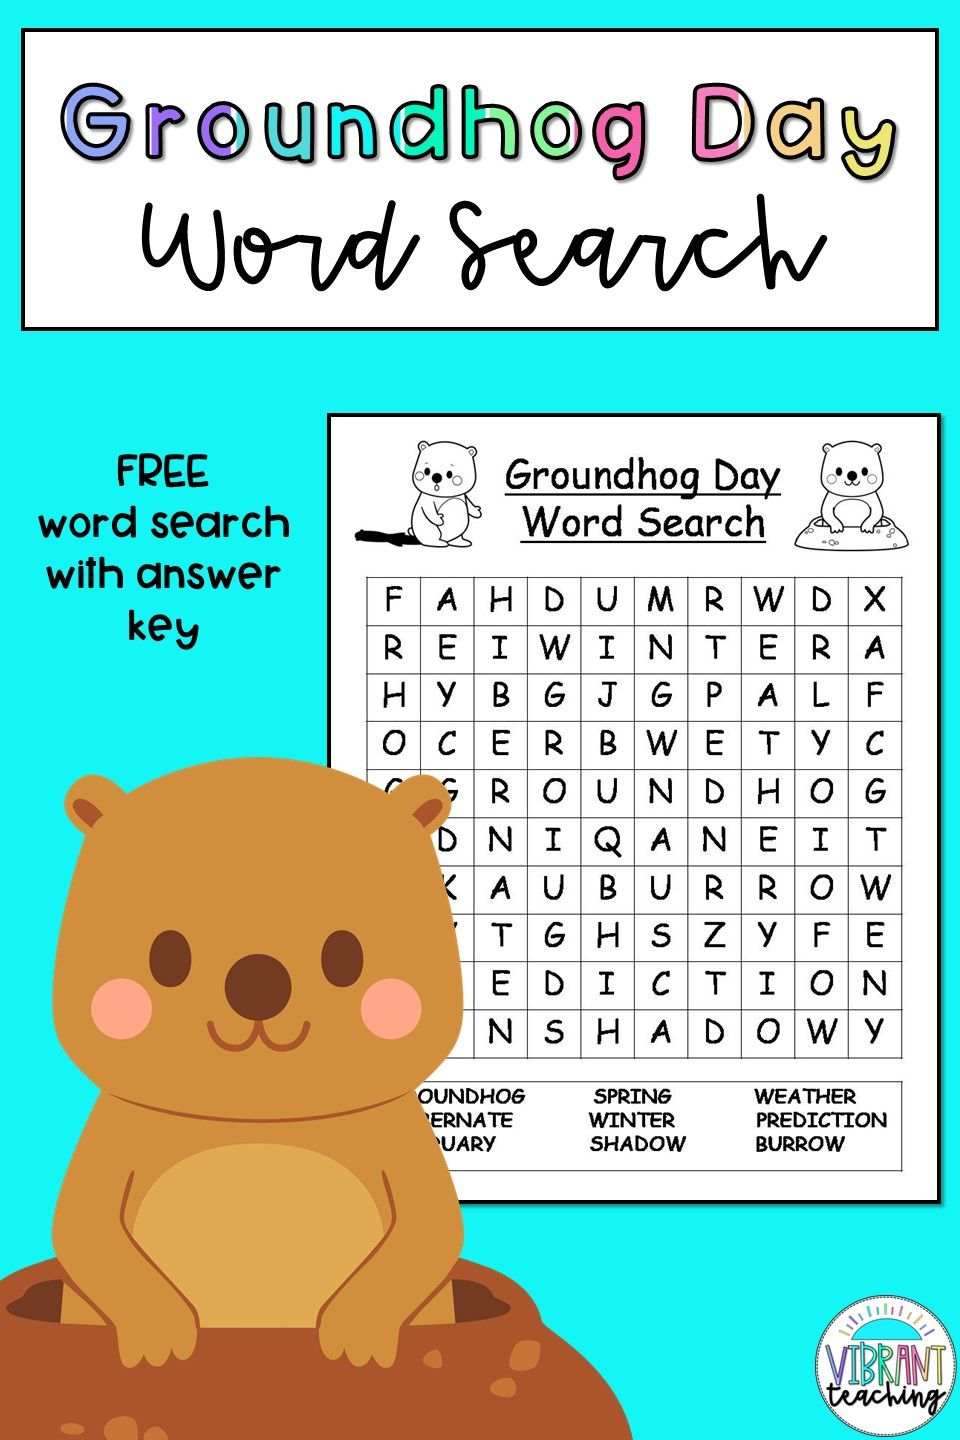 medium resolution of Groundhog Day Word Search in 2021   Groundhog day activities